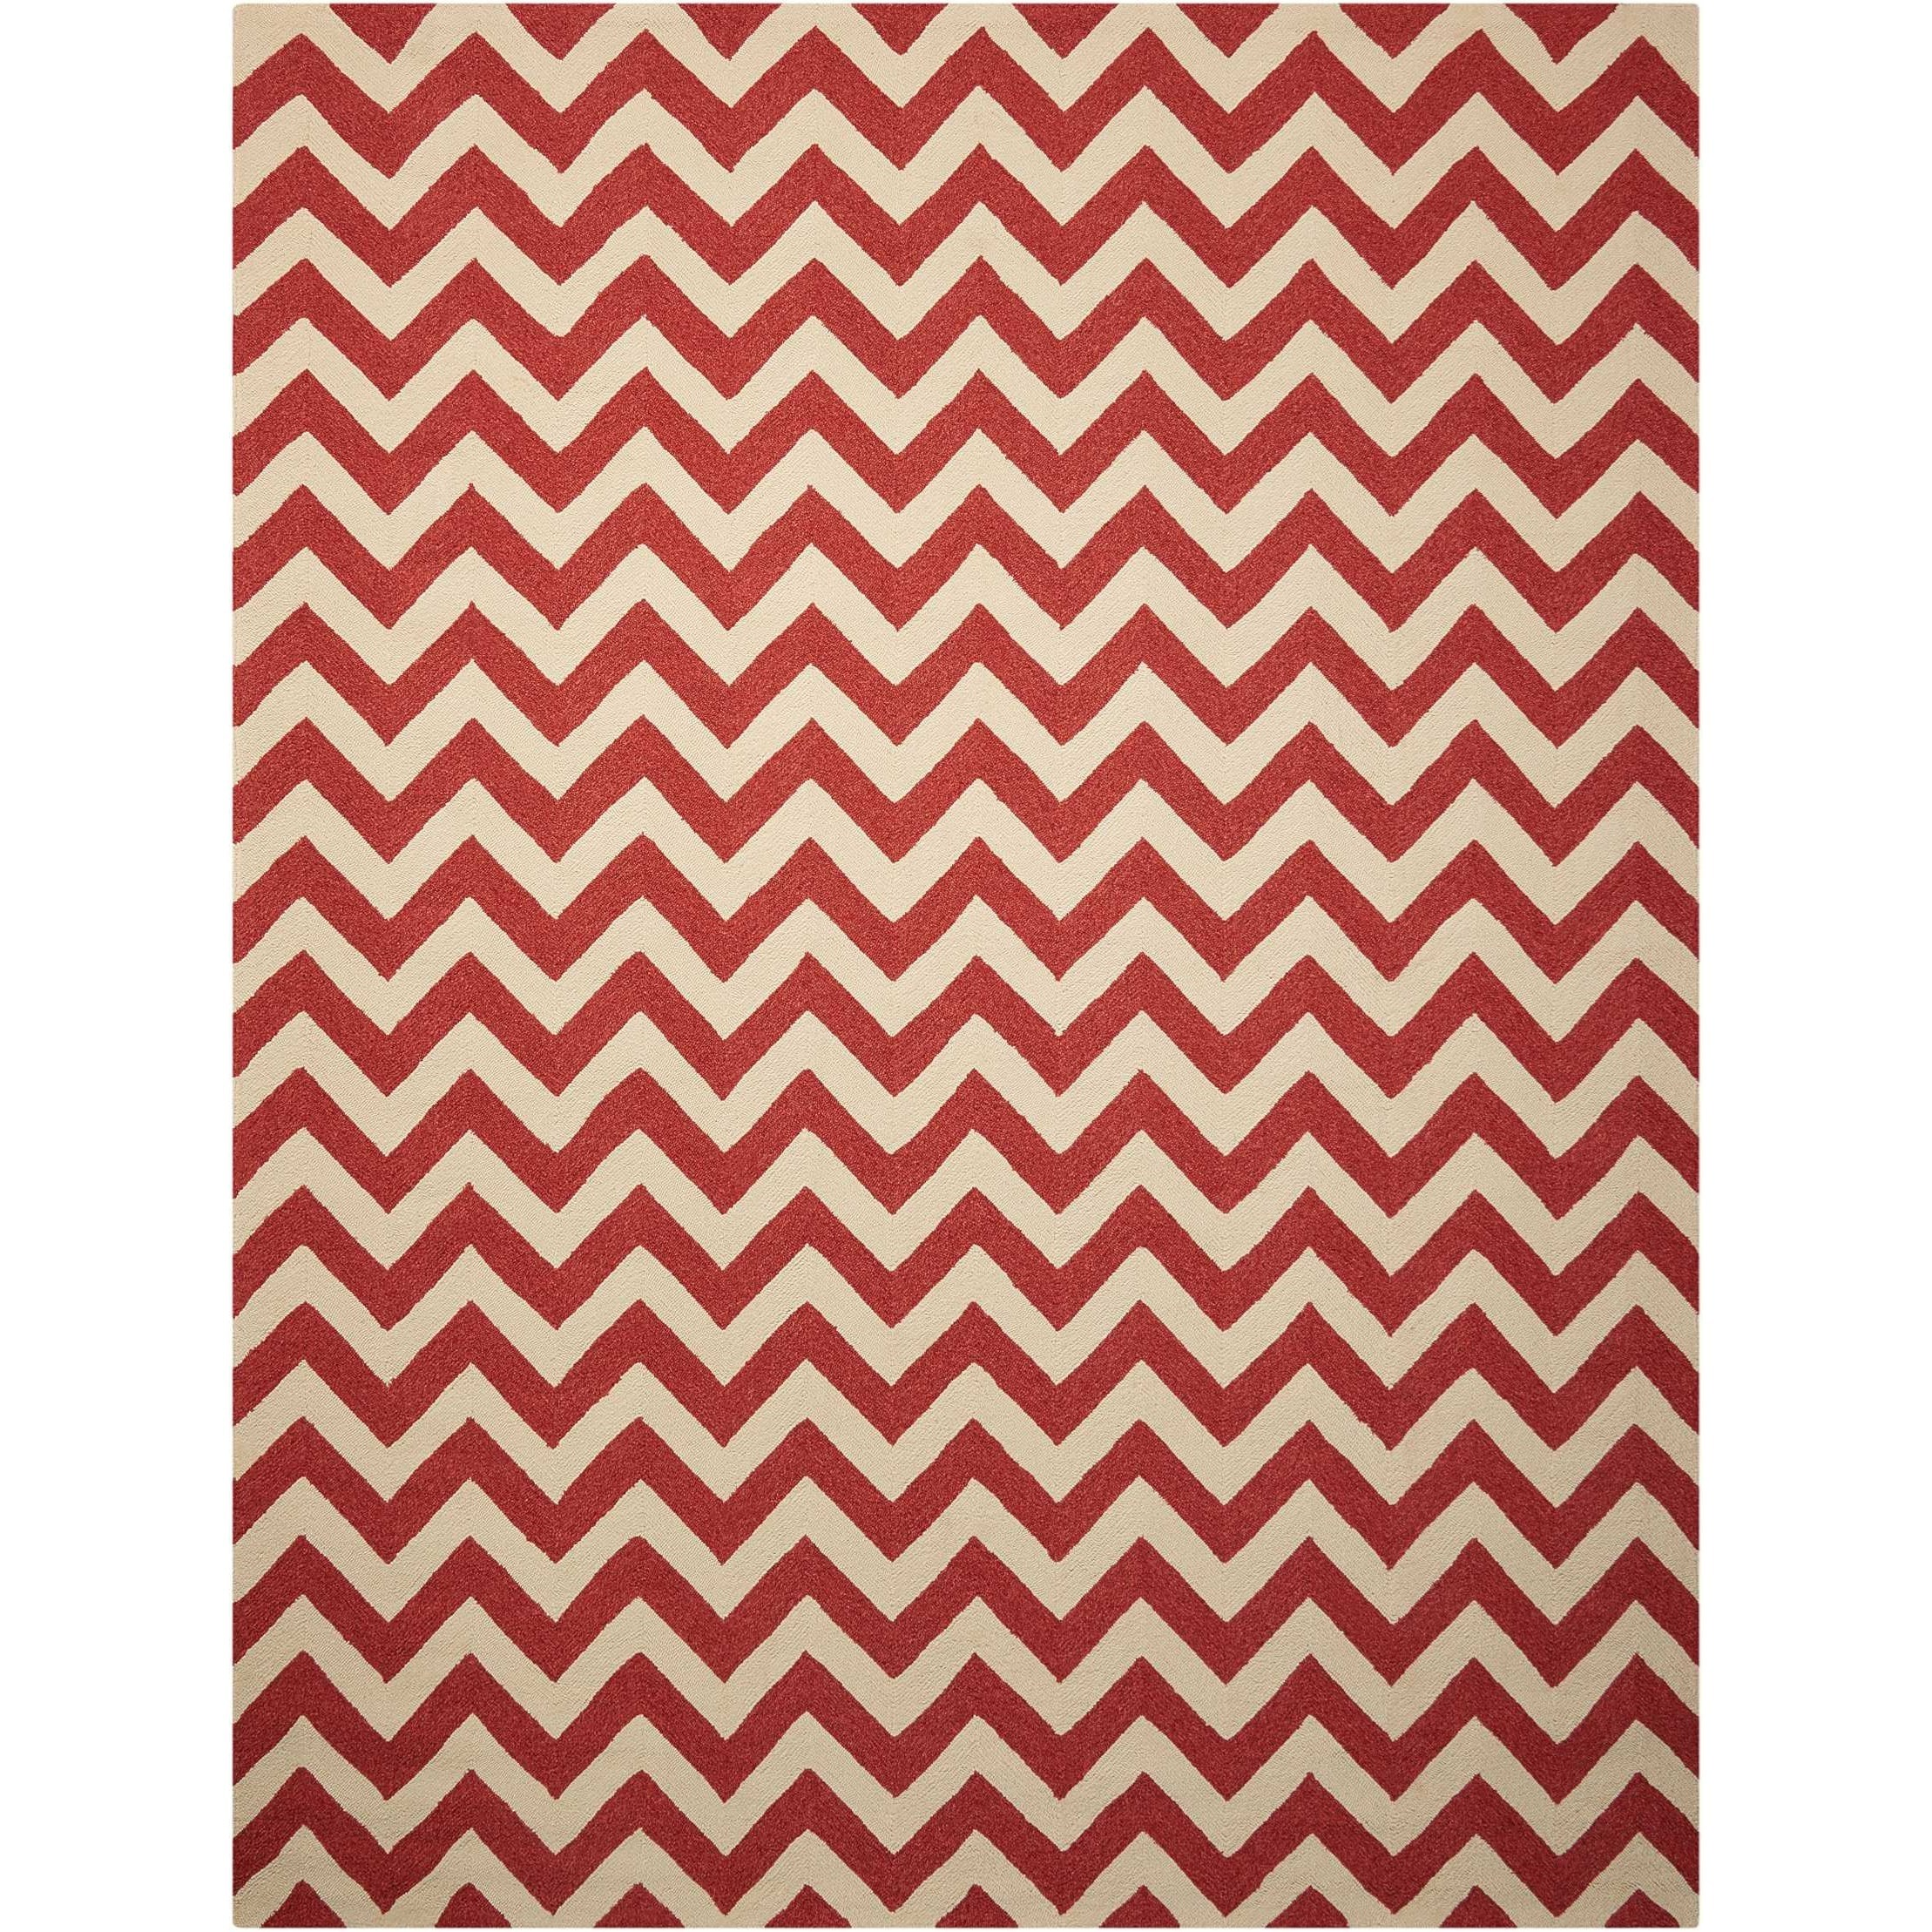 """Portico 8' x 10'6"""" Red Rectangle Rug by Nourison at Sprintz Furniture"""